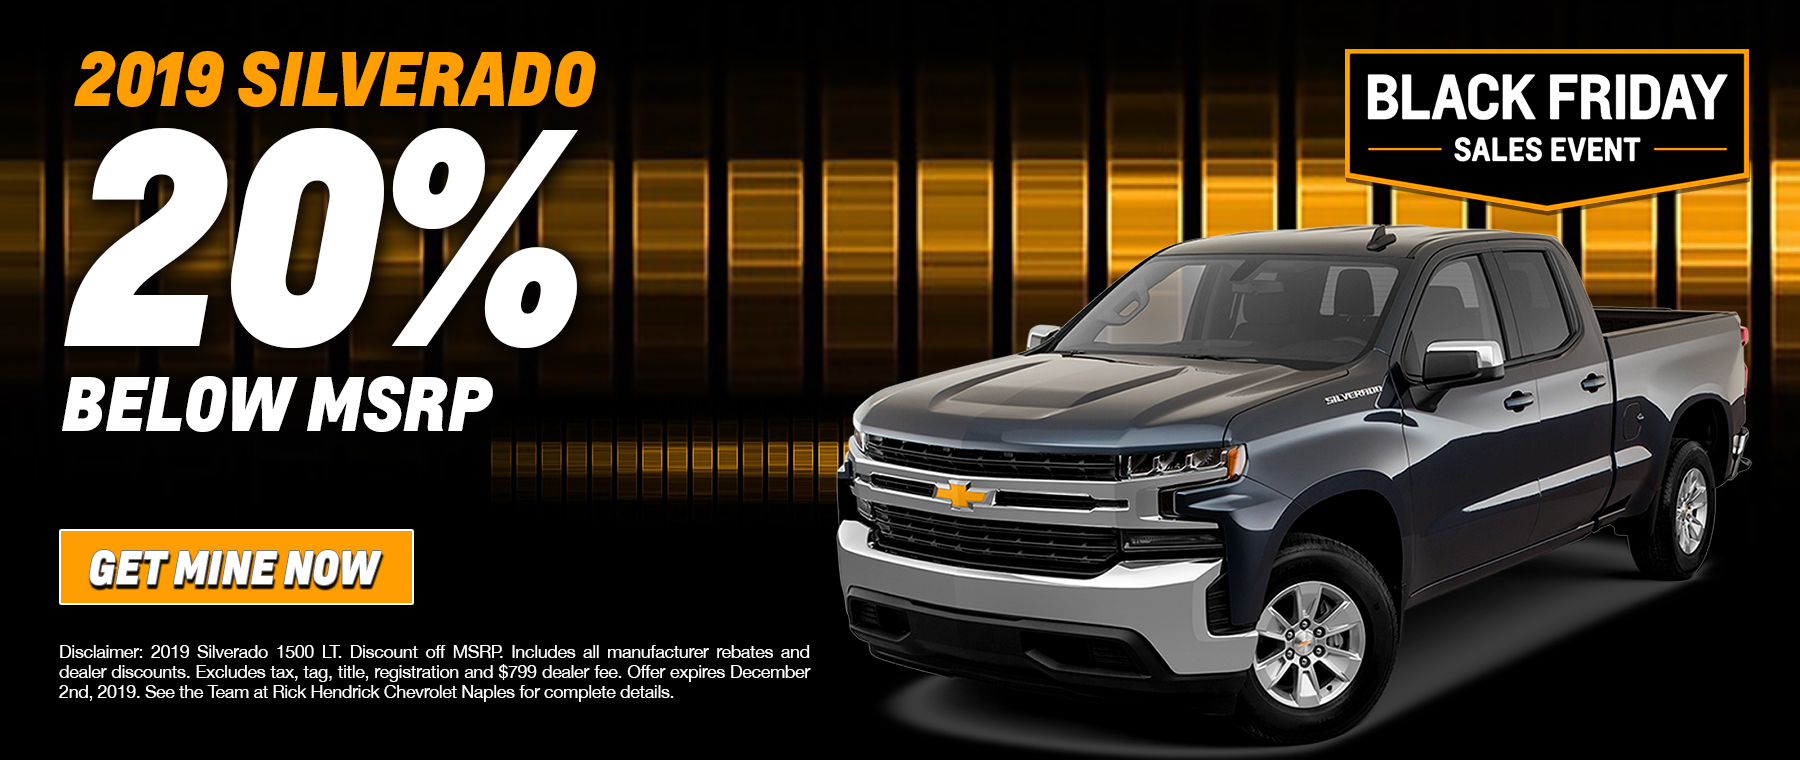 2019 Silverado 20% below msrp special